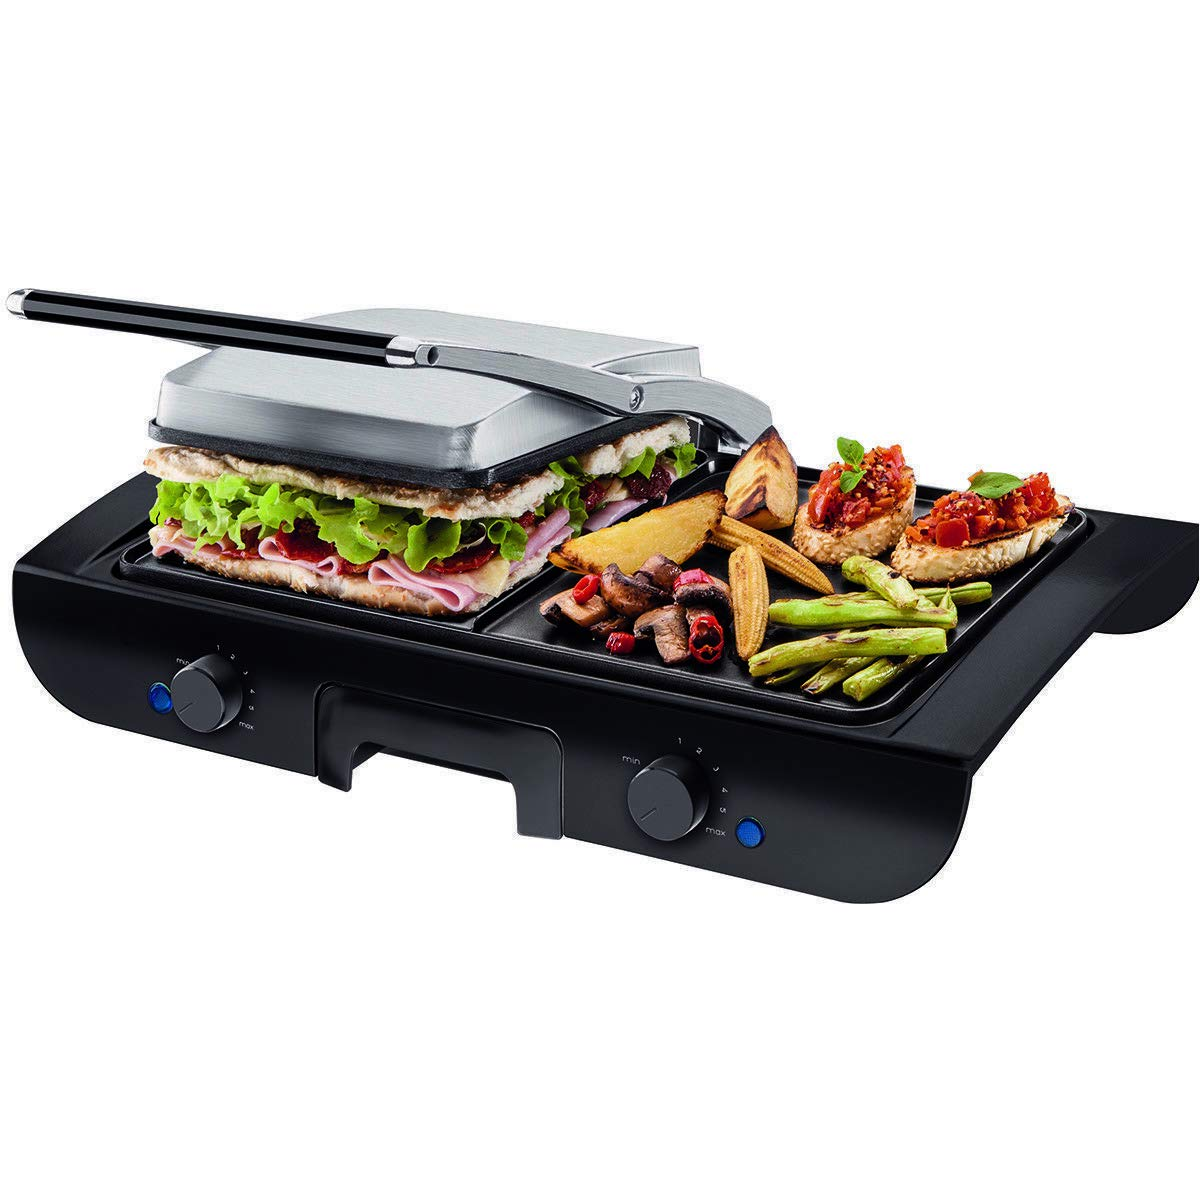 totoshop 1500W Electric 2 in 1 Multi Grill Griddle Sandwich Maker with Nonstick Plates New Black